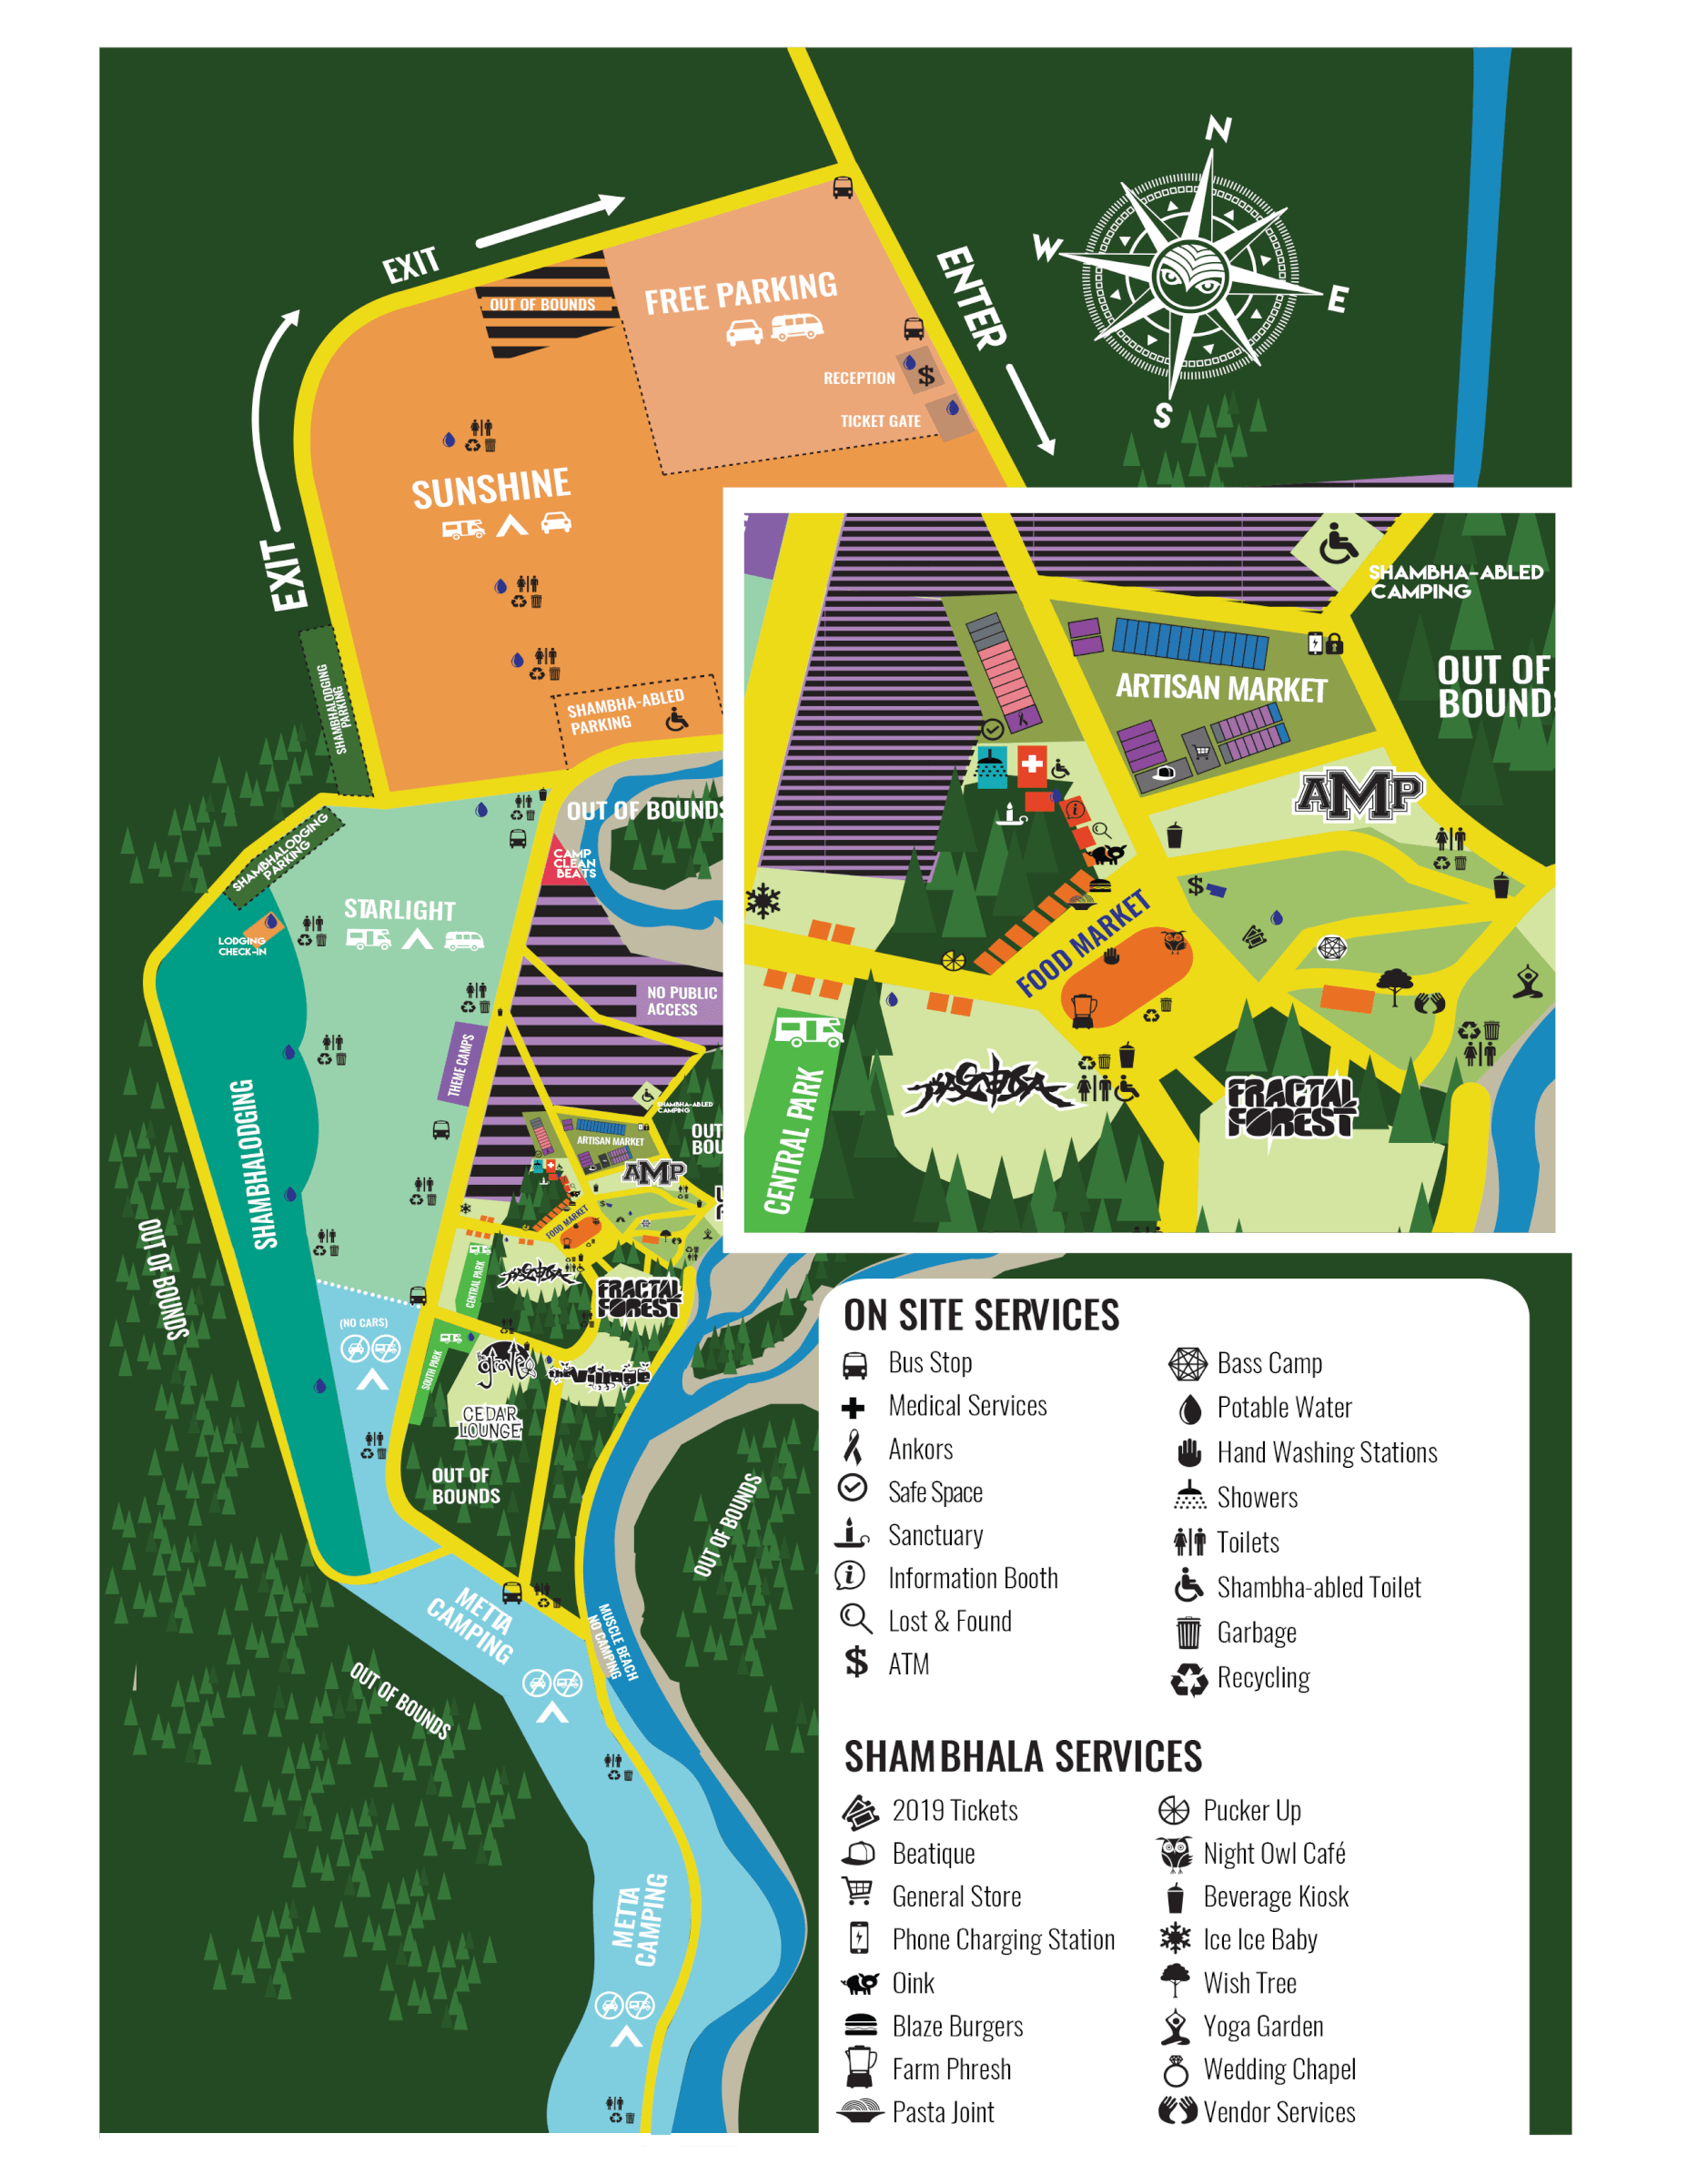 Shambhala Music Festival - Plan Your Journey